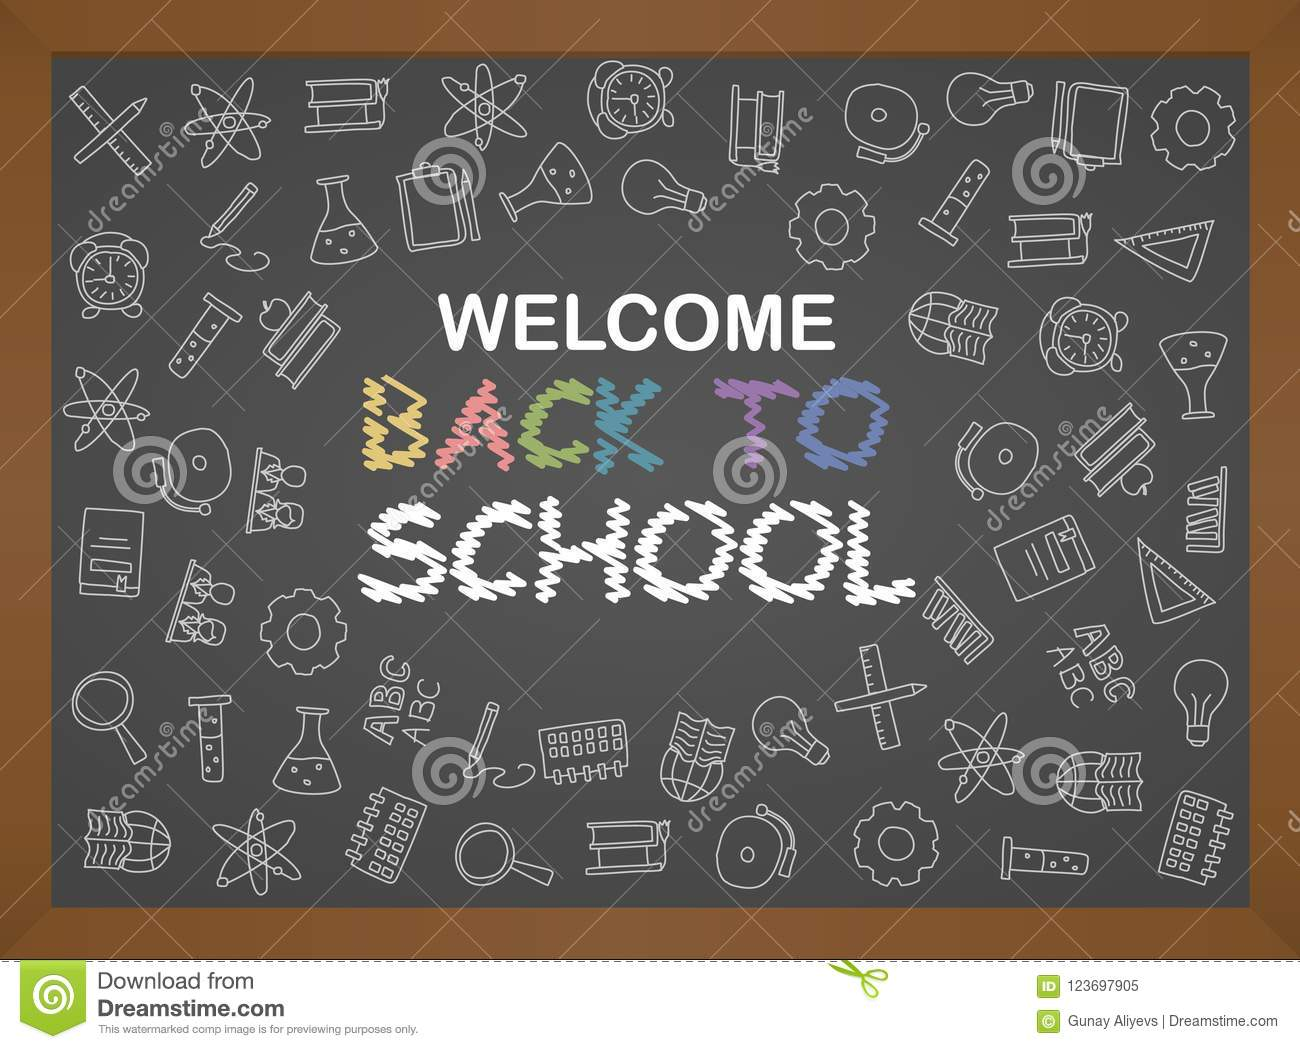 Welcome back wallpaper free download